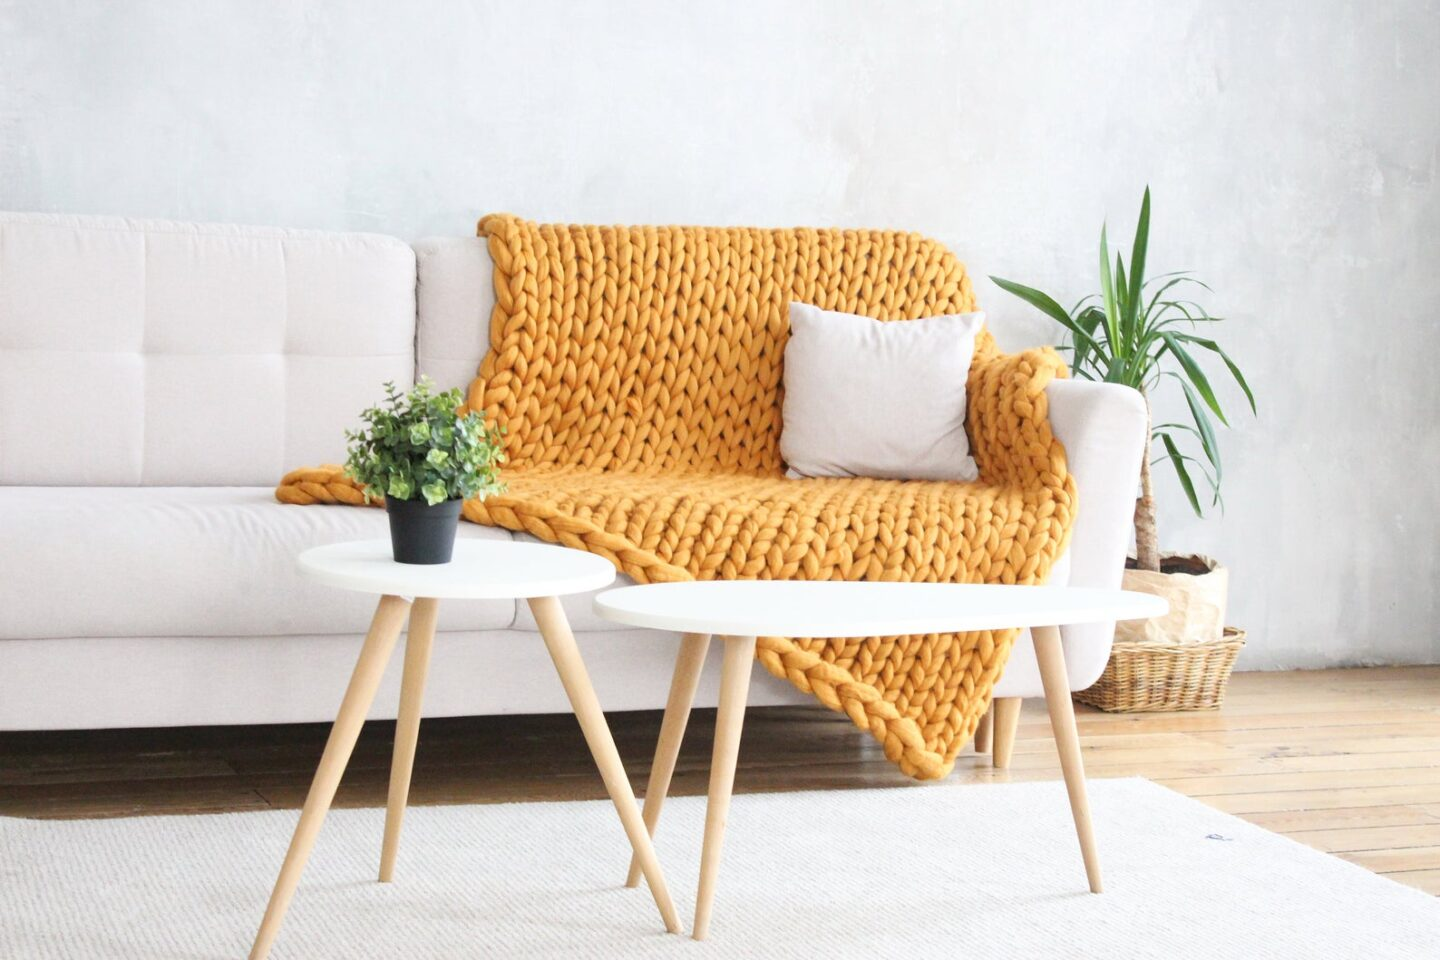 Yellow chunky knit throw blanket on a white couch with white tables in front of it via Etsy.